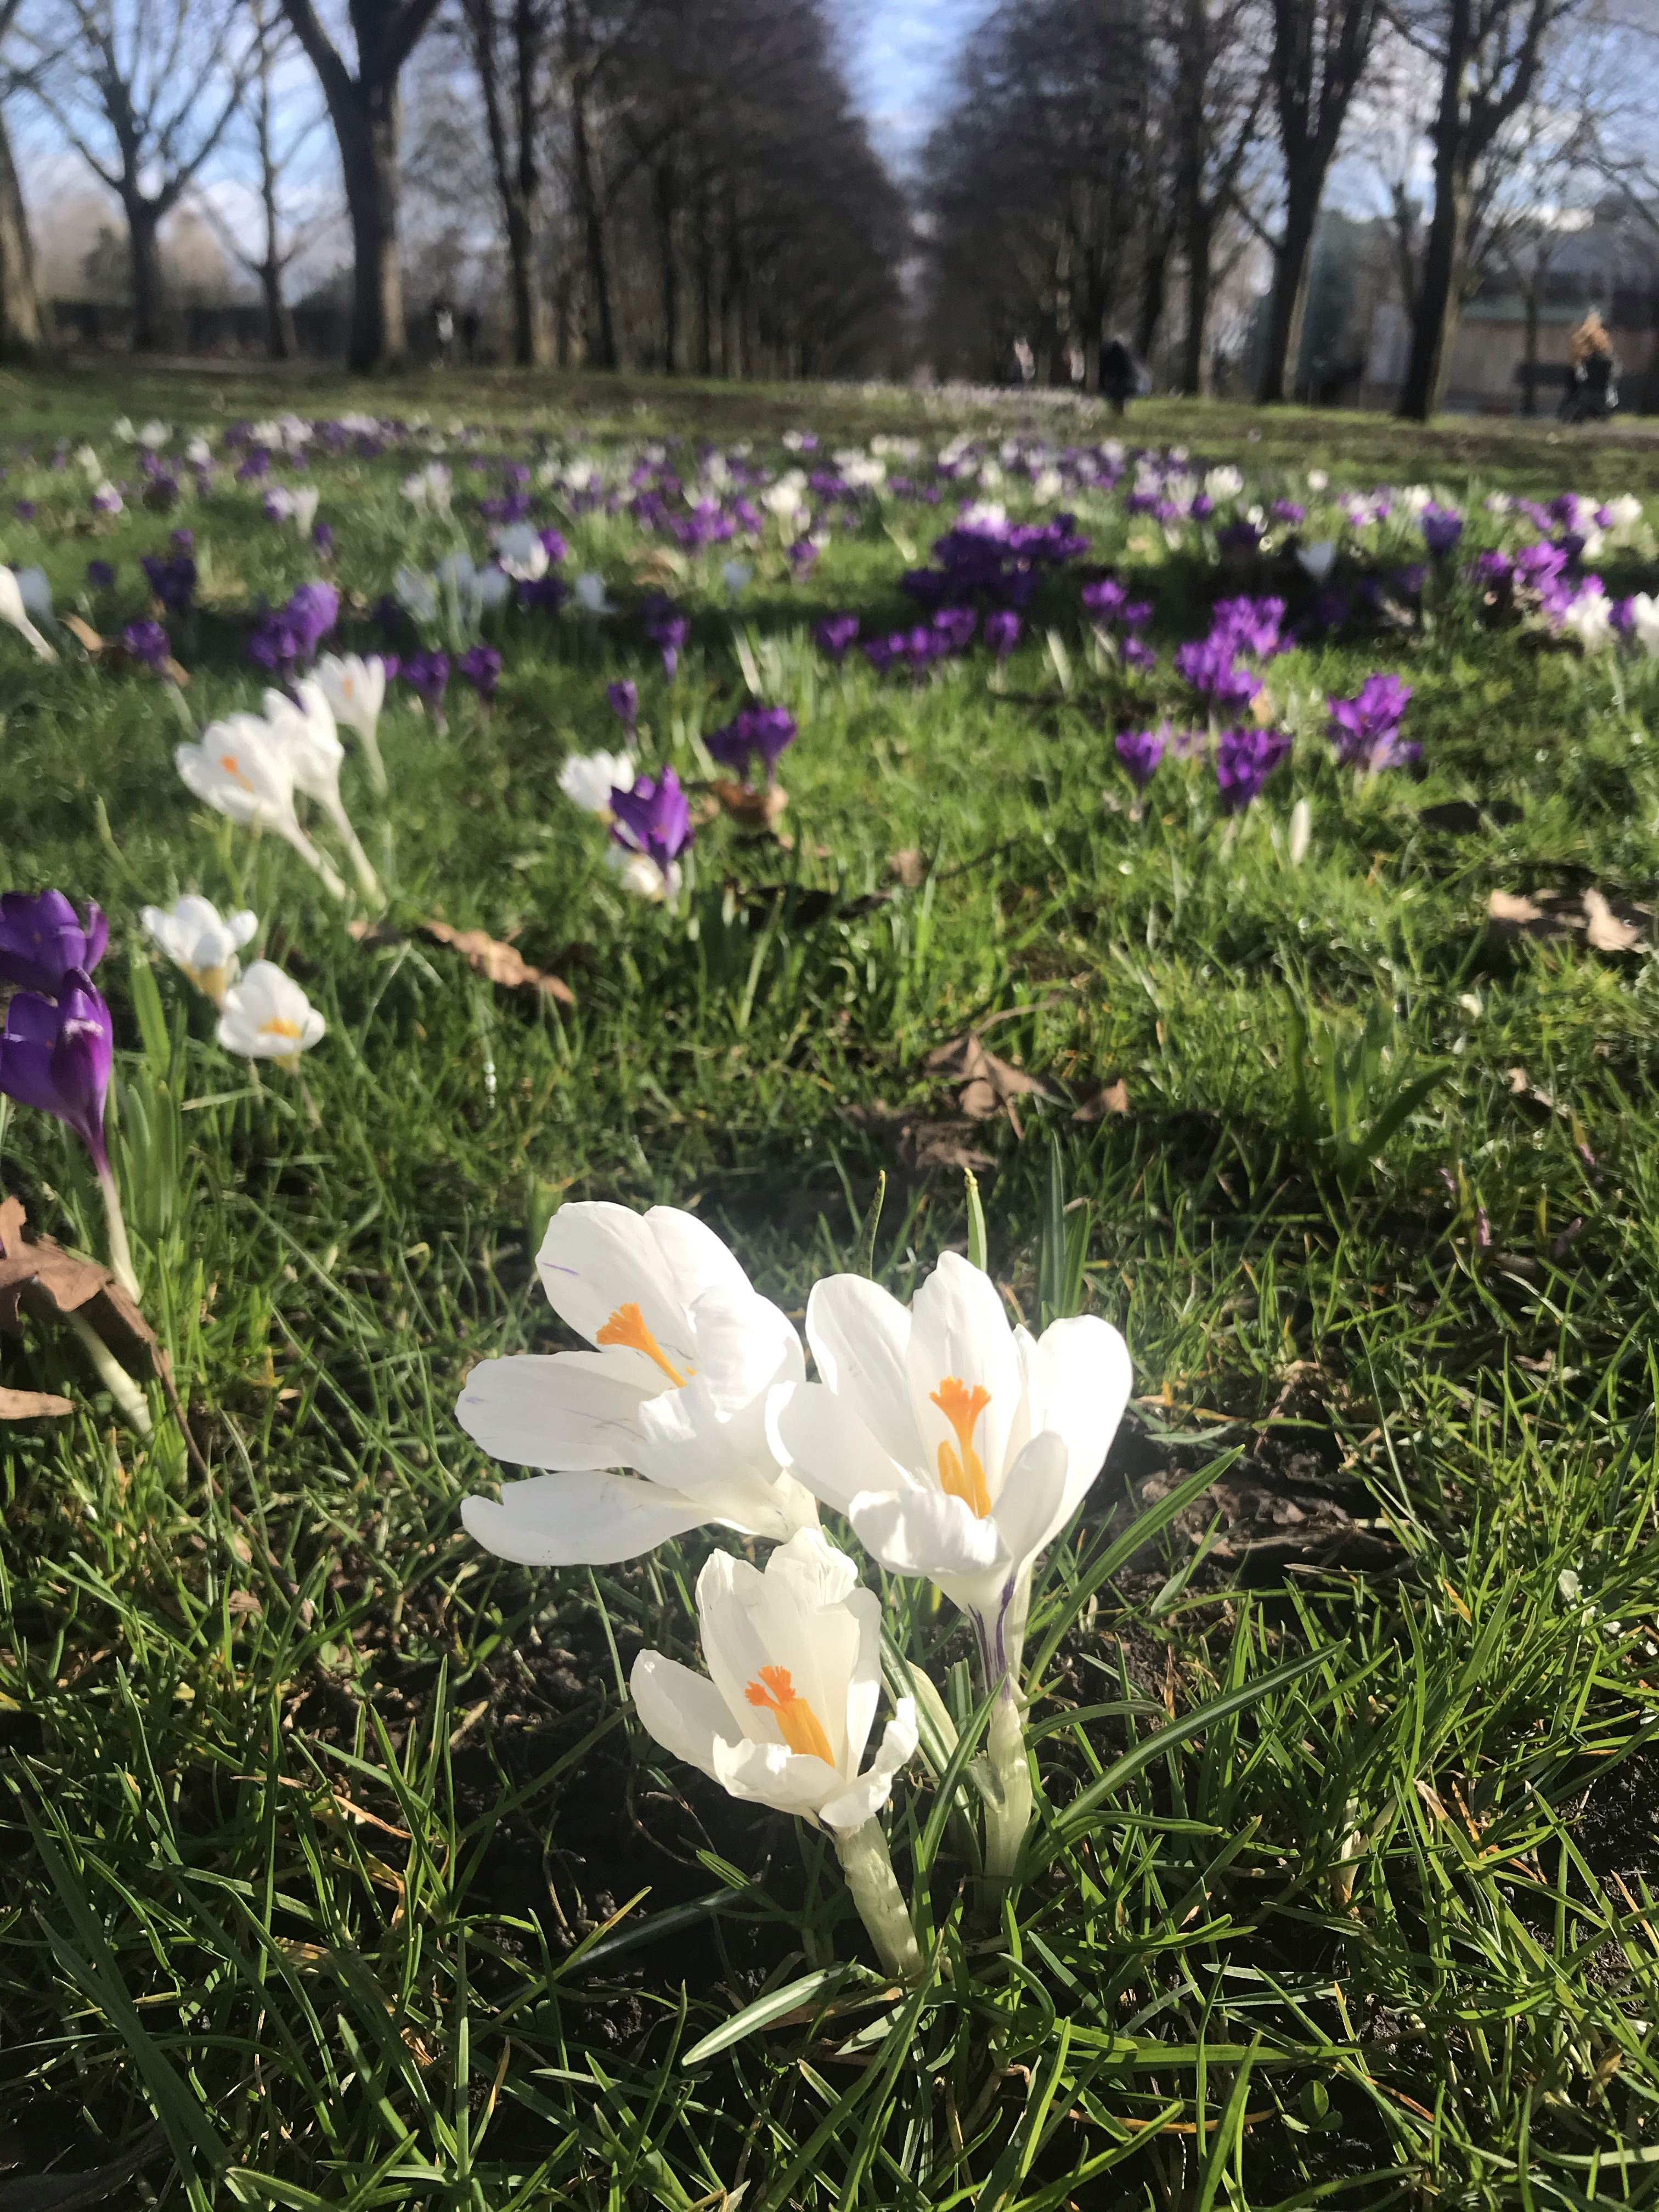 the image is of crocuses growing on grass in a park, February 2021